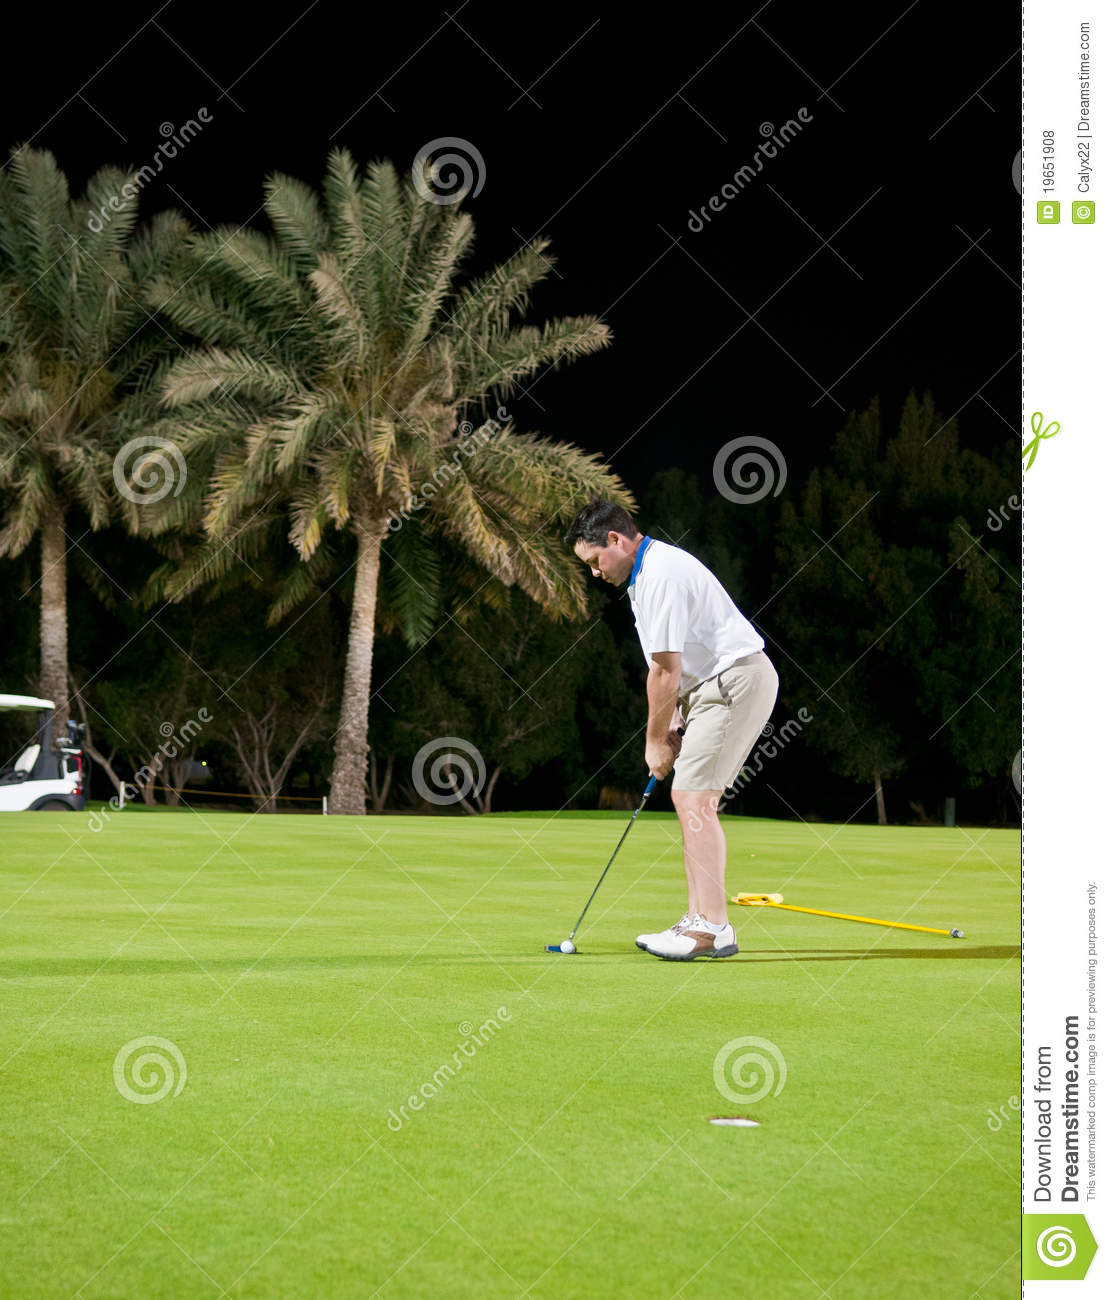 Male Golfer Prepares To Putt The Ball In The Hole During A Night Game